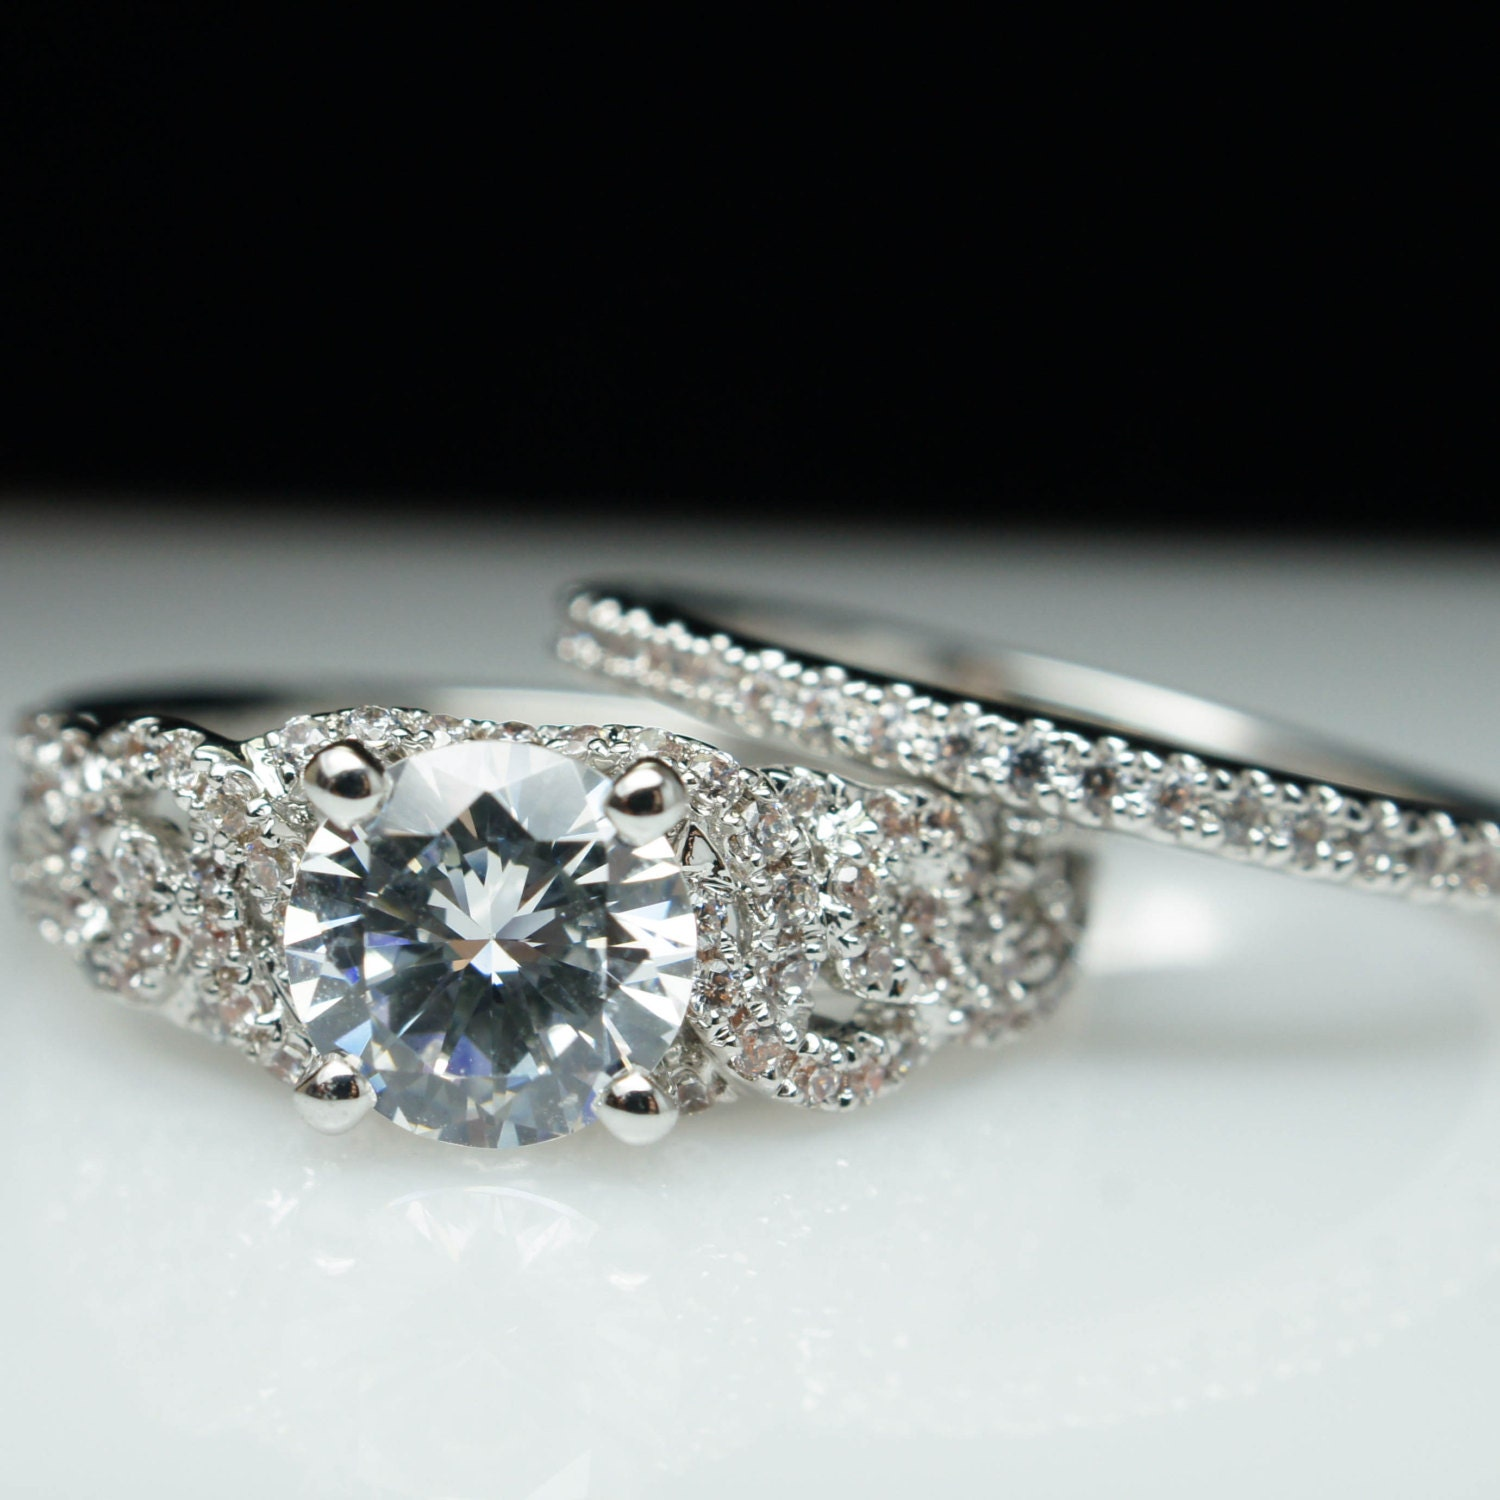 diamond engagement ring & matching wedding band set solitaire